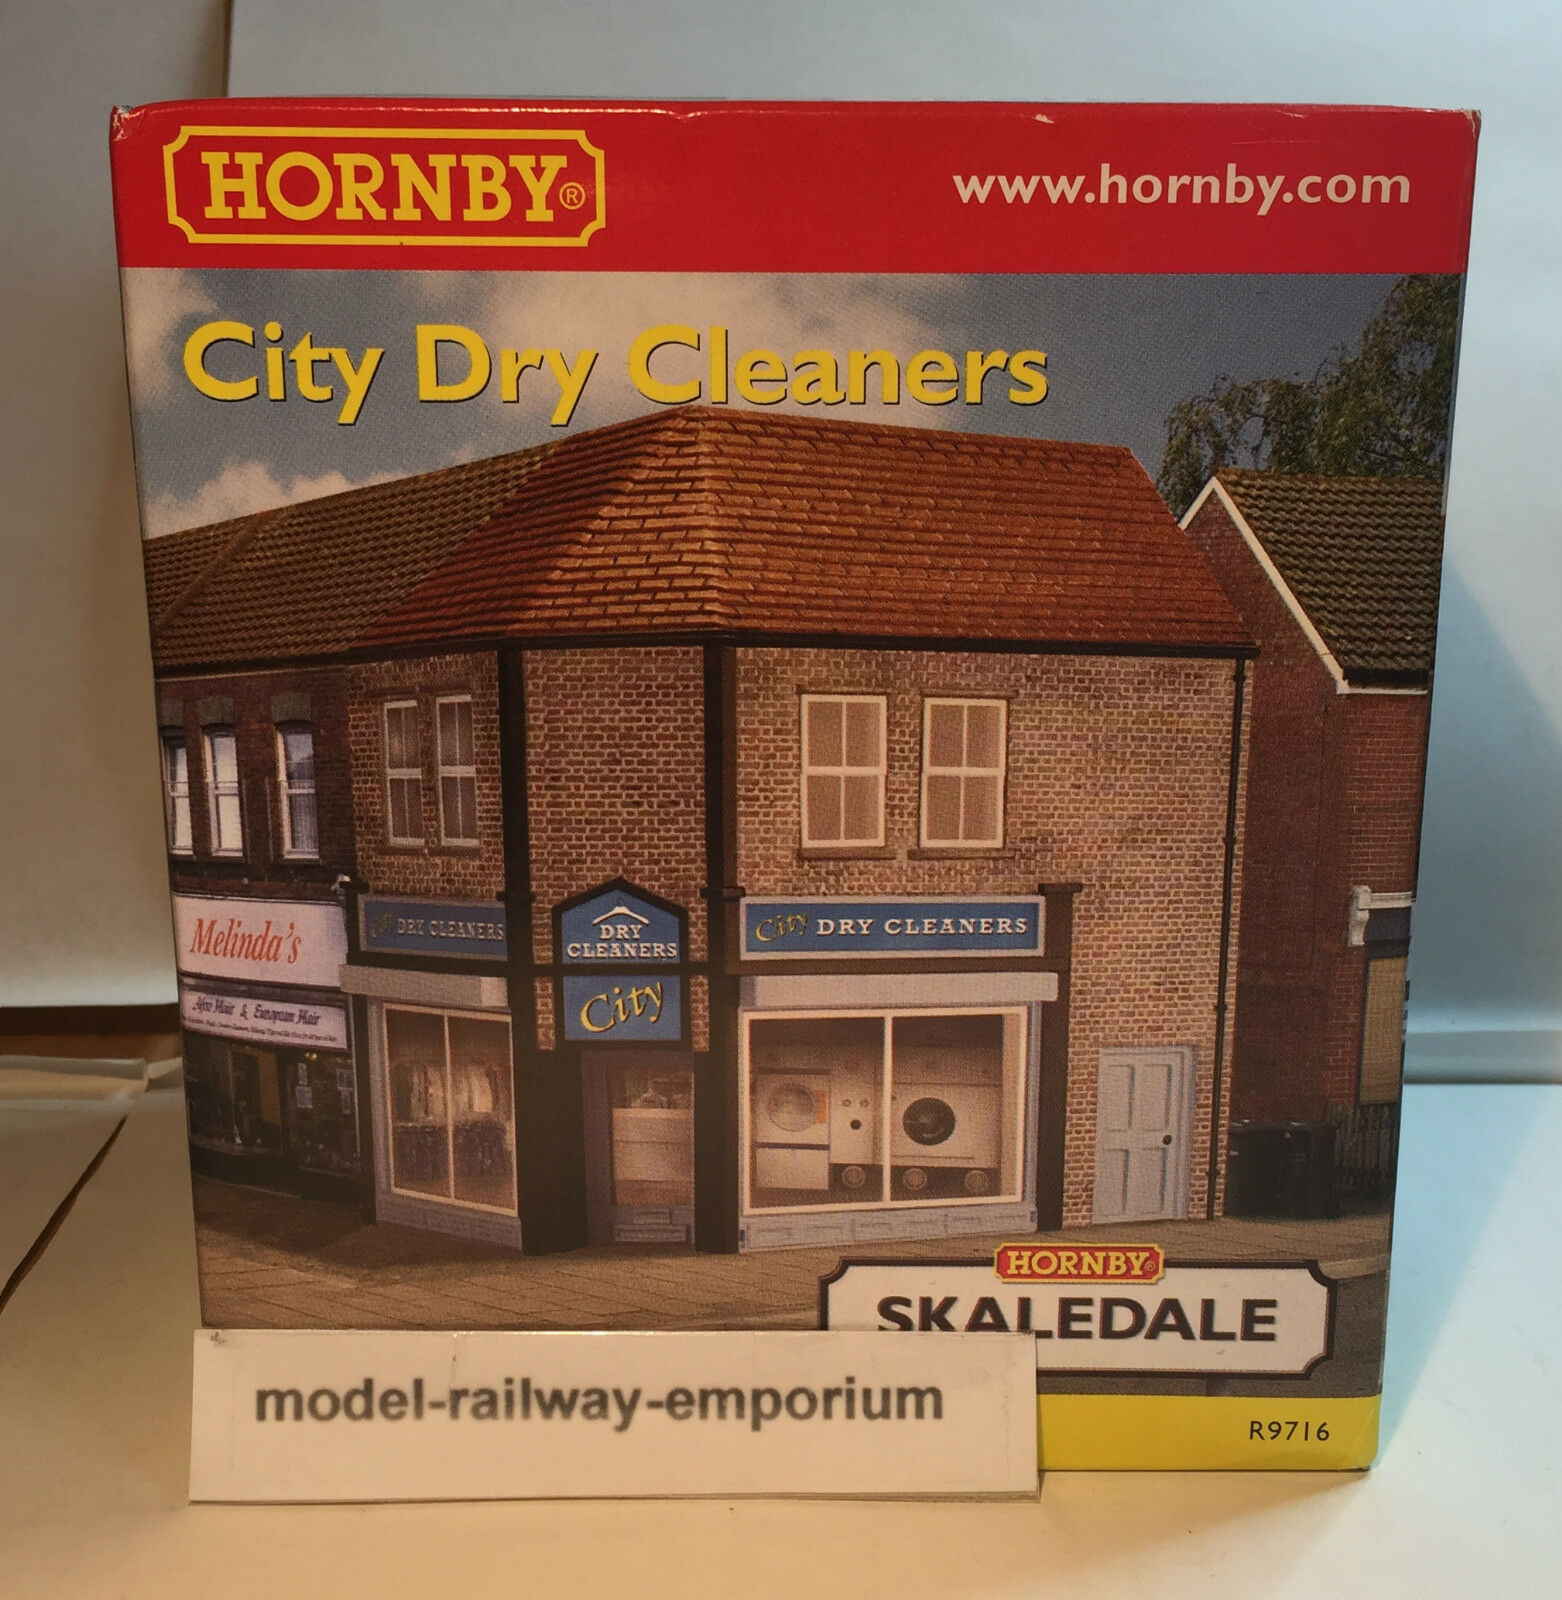 Hornby SKALEDALE - R9716 - CITY DRY CLEANERS - NEW ITEM BOXED RARE LOOK